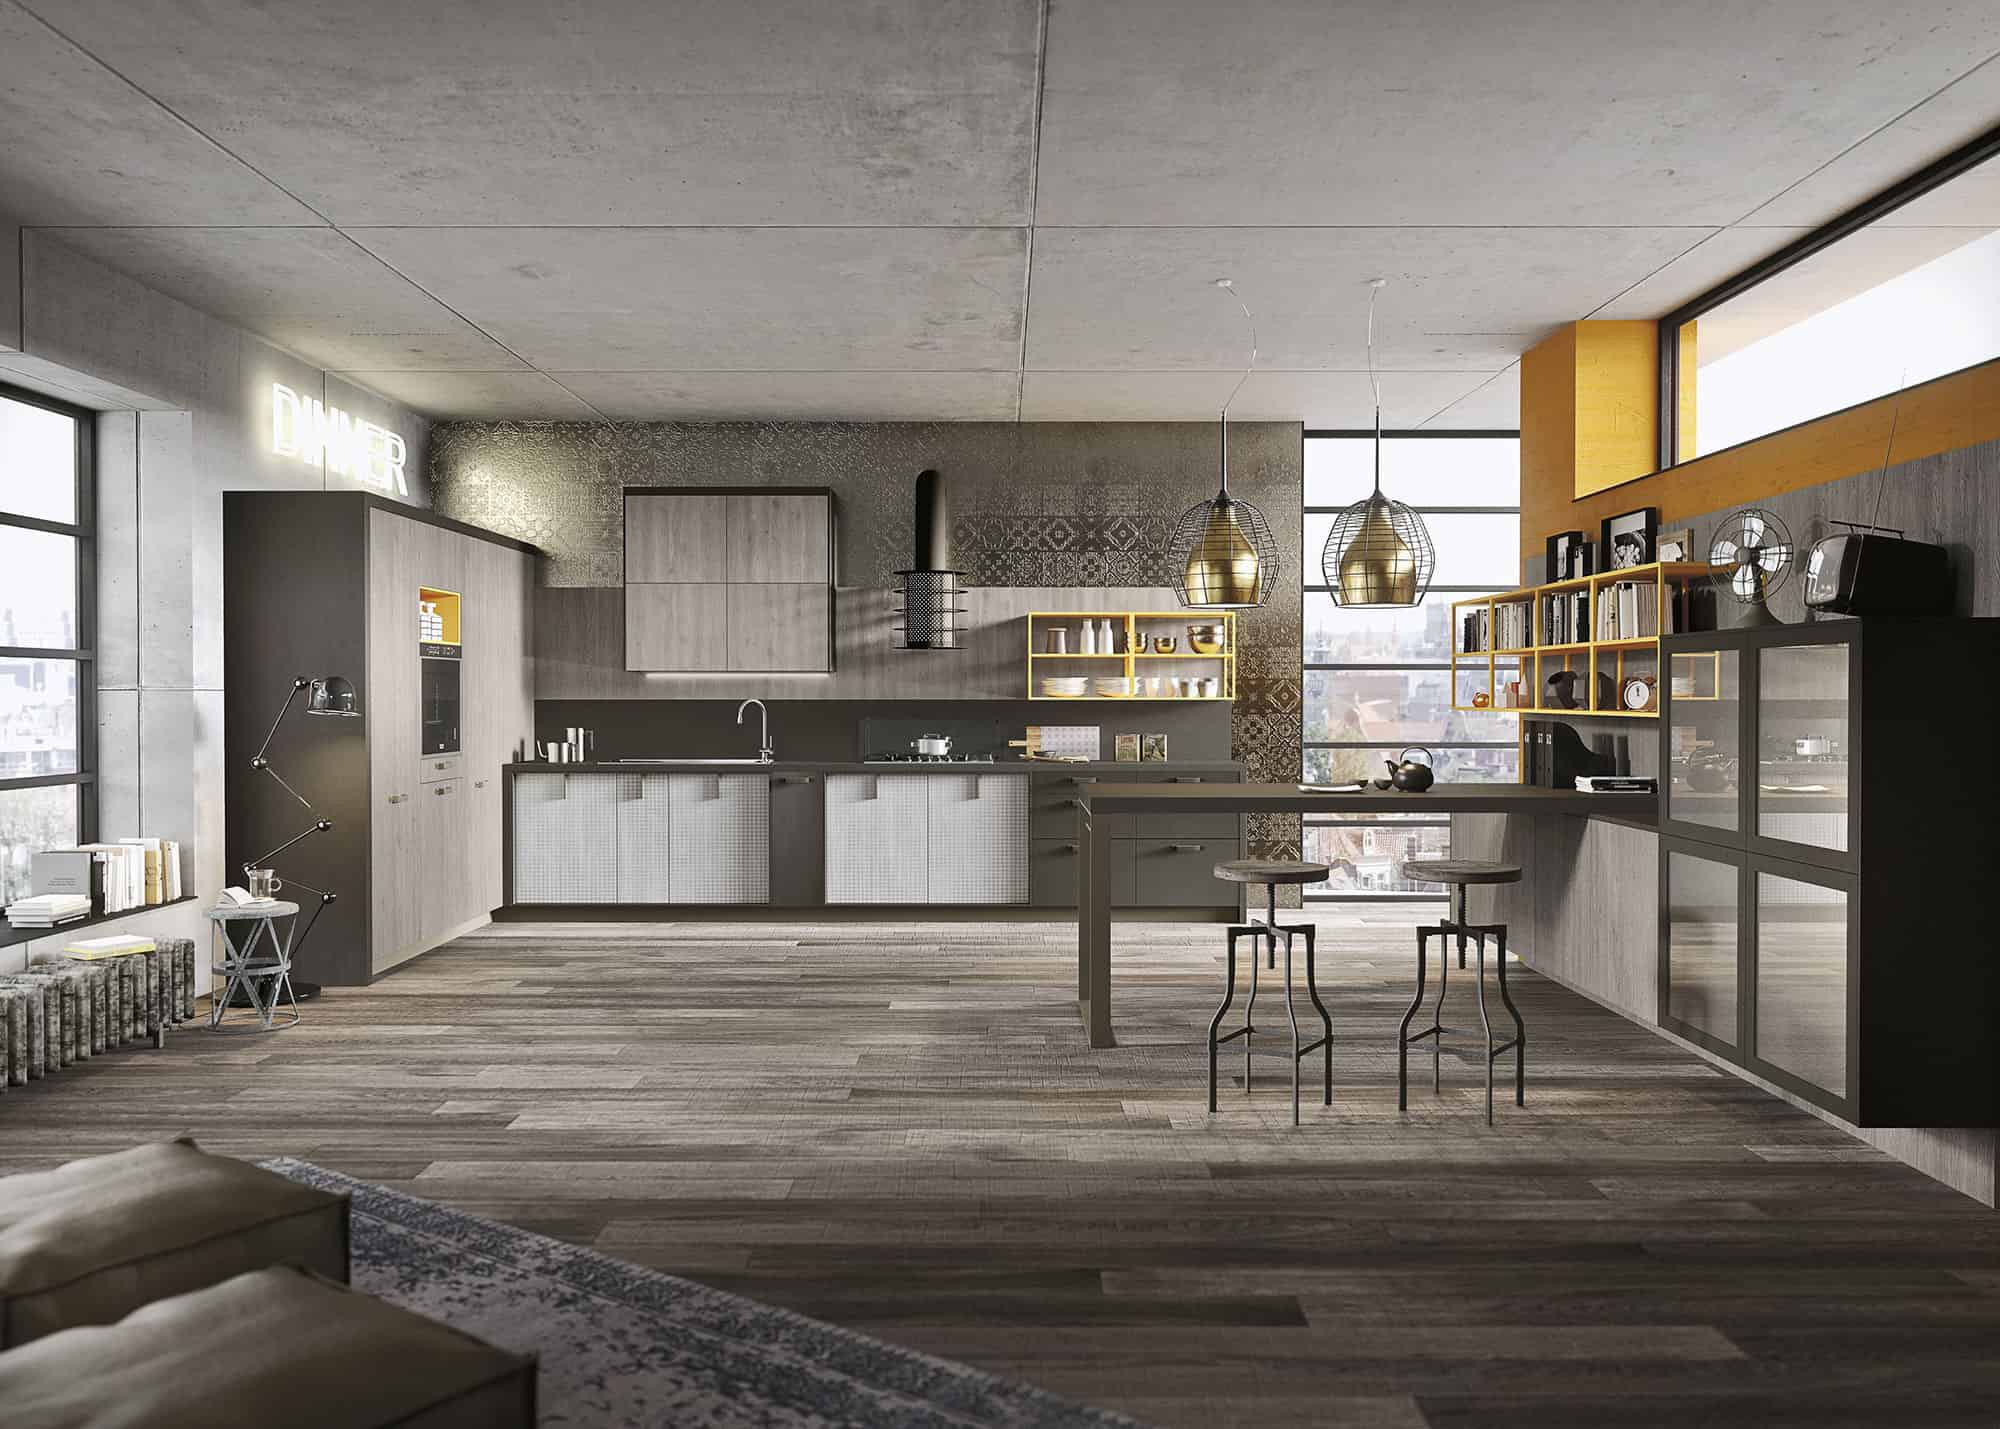 Kitchen Designs For Loft 3 Urban Ideas From Snaidero on wood kitchen pantry